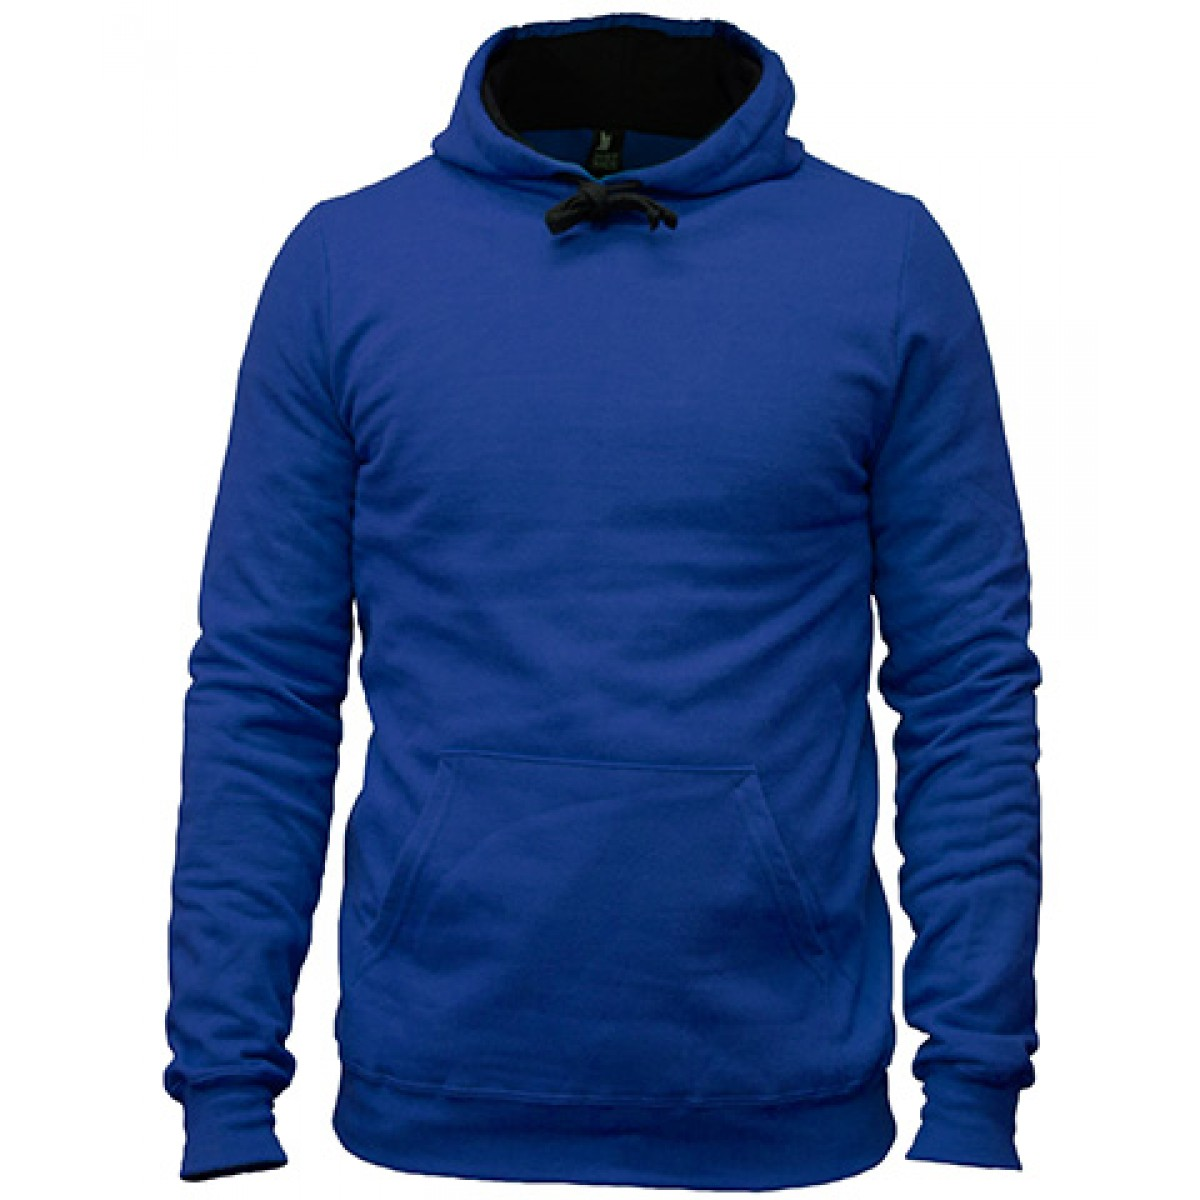 Concert Fleece Hoodie-Royal Blue-M